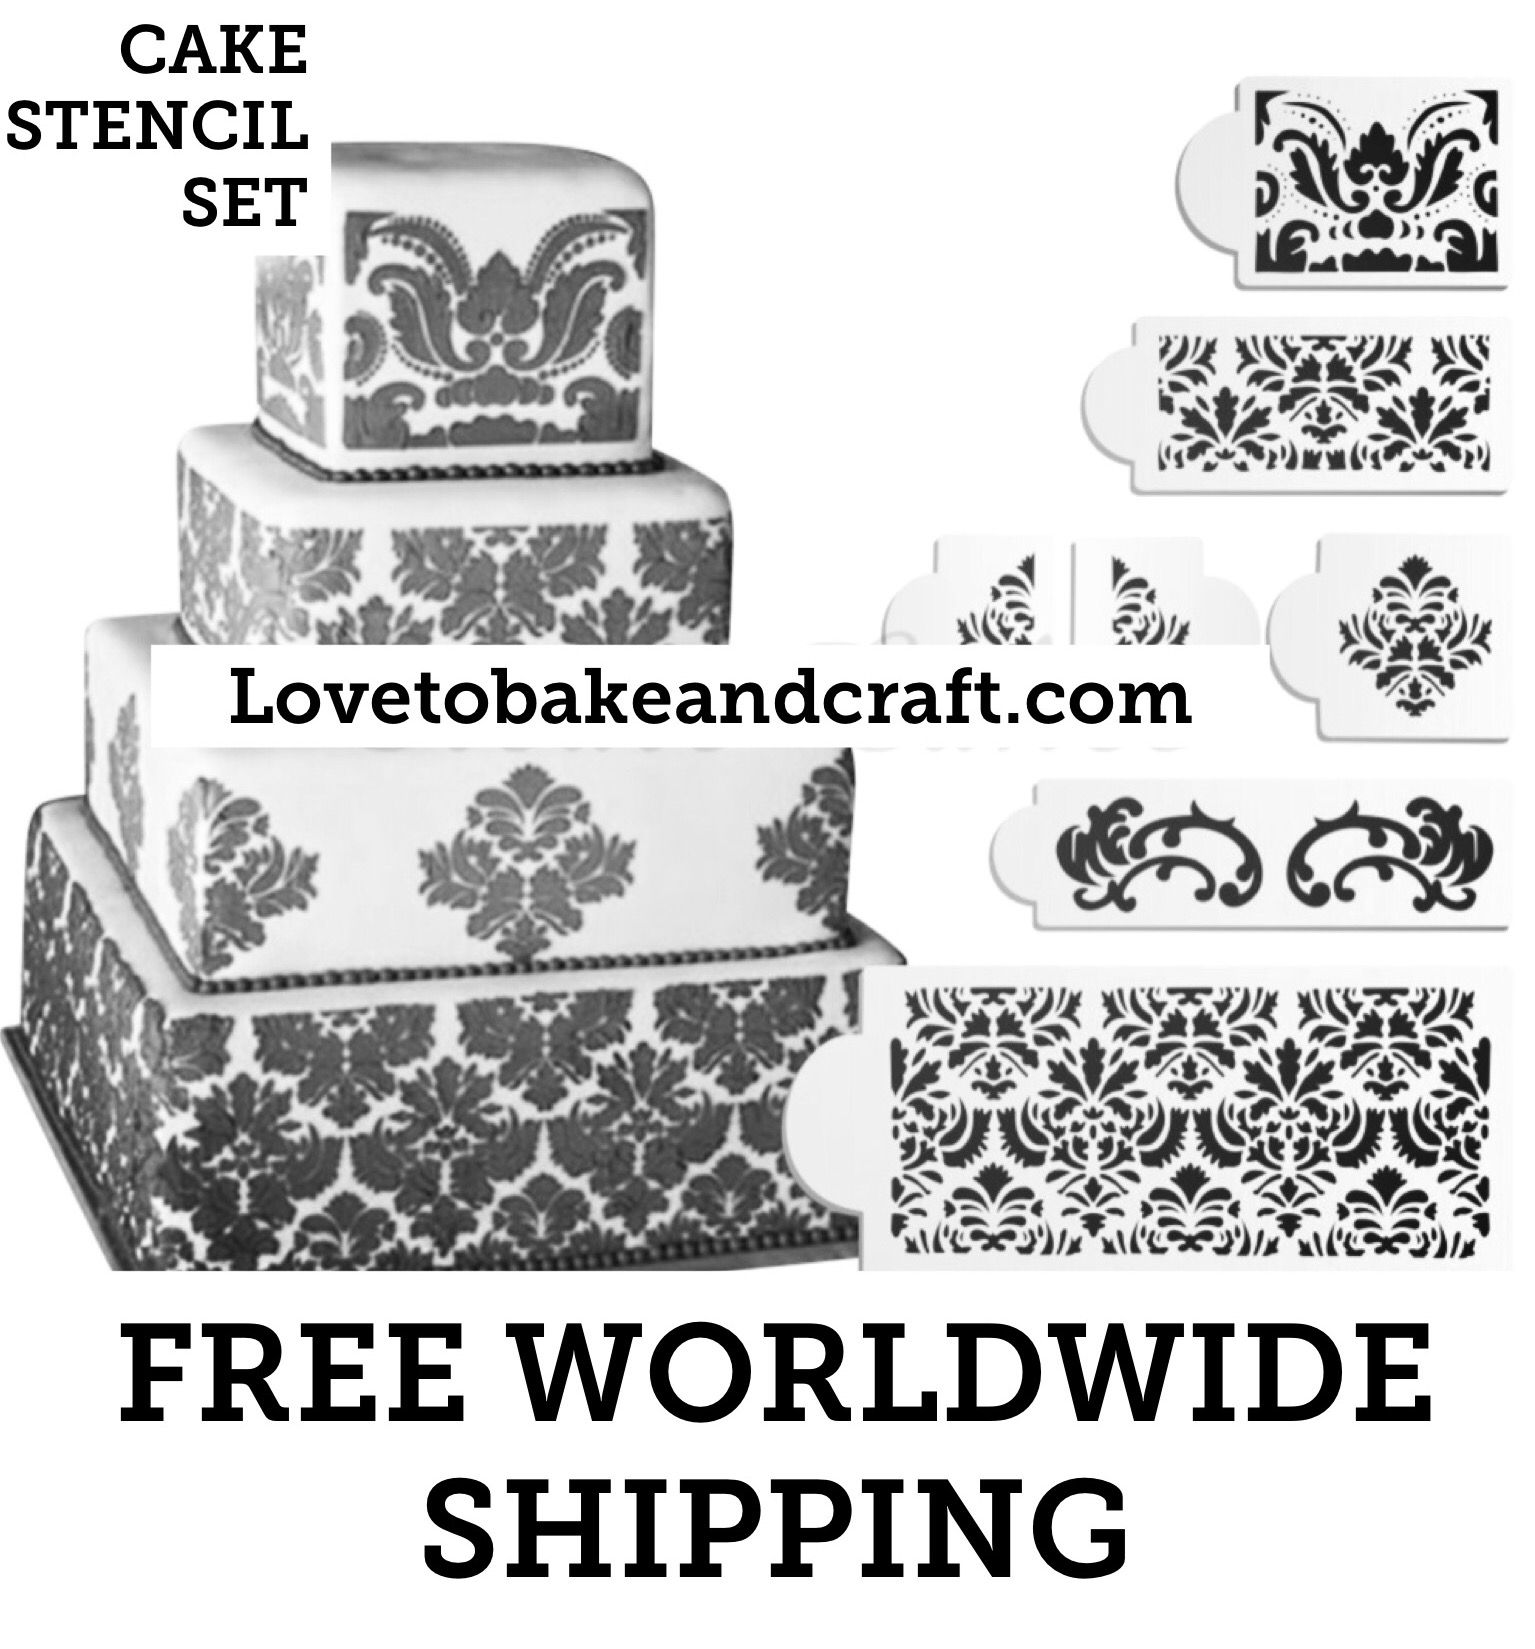 wedding cake stencils printable wedding cake stencil 7 set designer cake stencil 25704